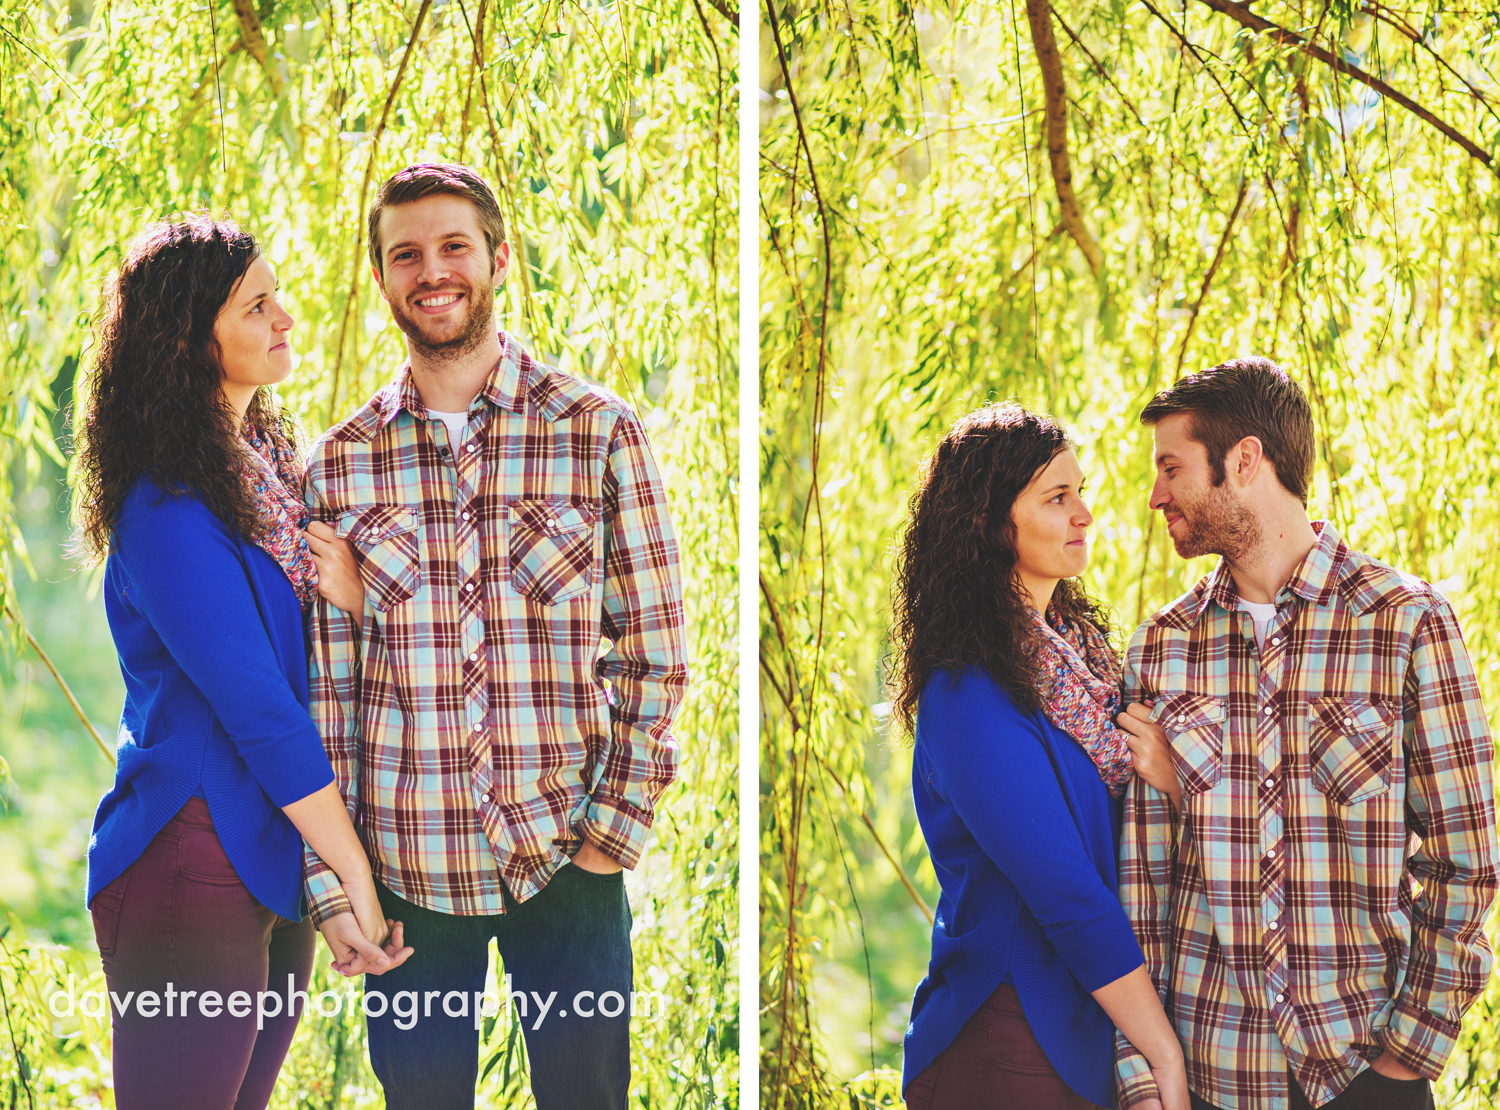 quincy_engagement_photographer_coldwater_engagement_photographer_05.jpg